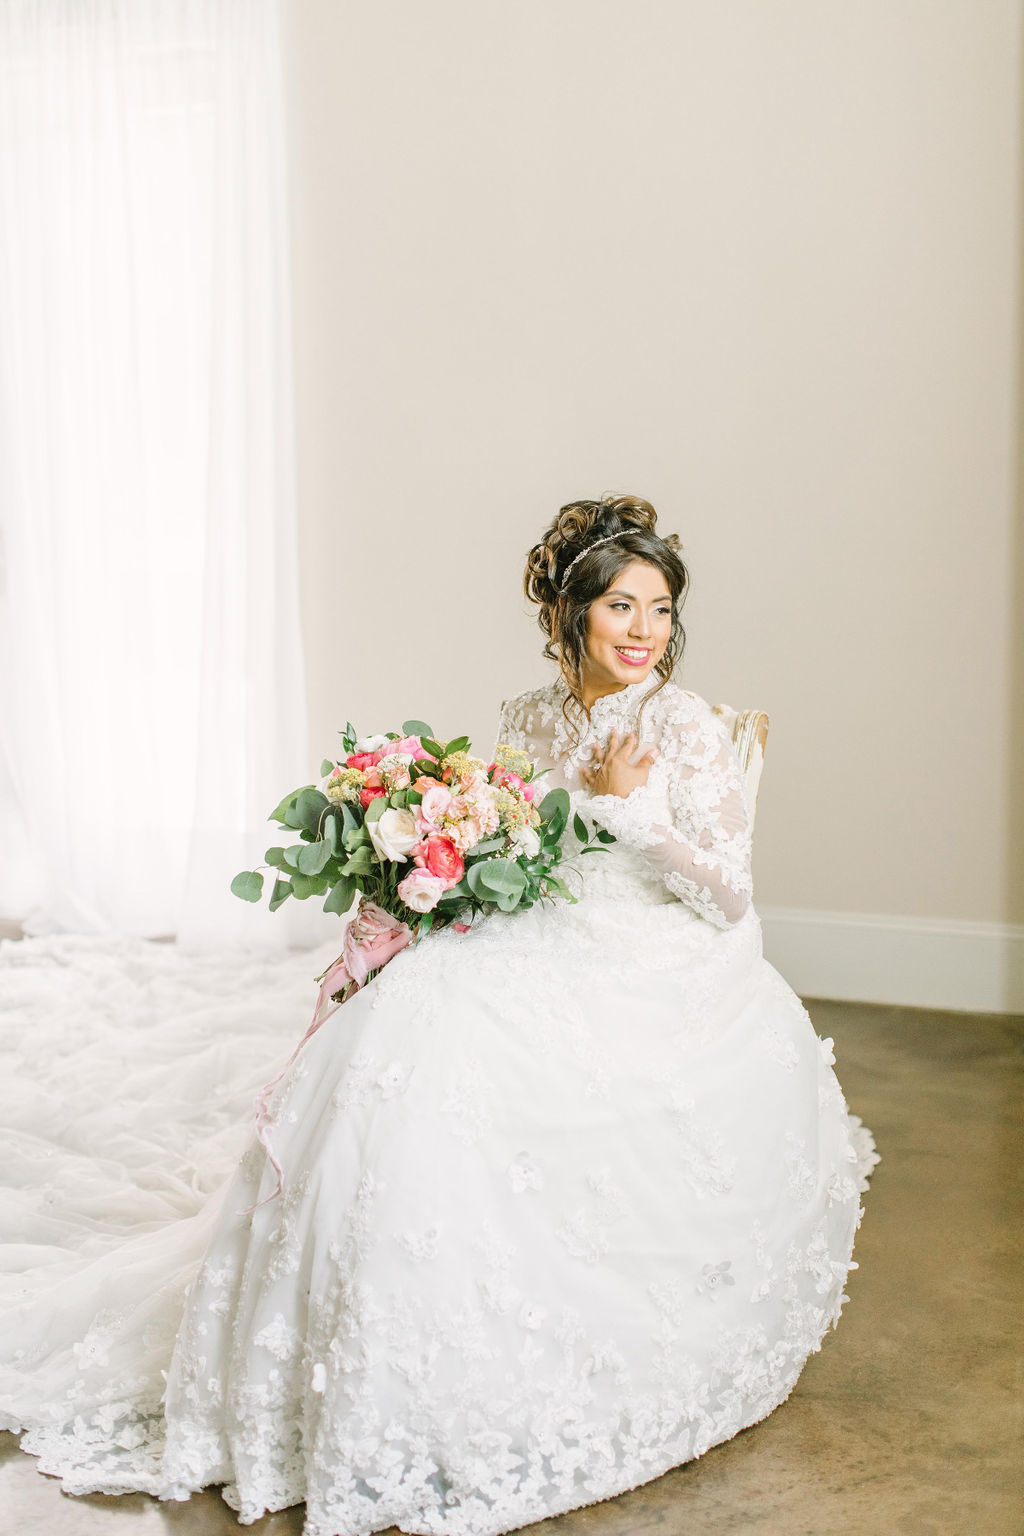 Bride are designing custom wedding dresses online with scalloped sleeves with Anomalie.